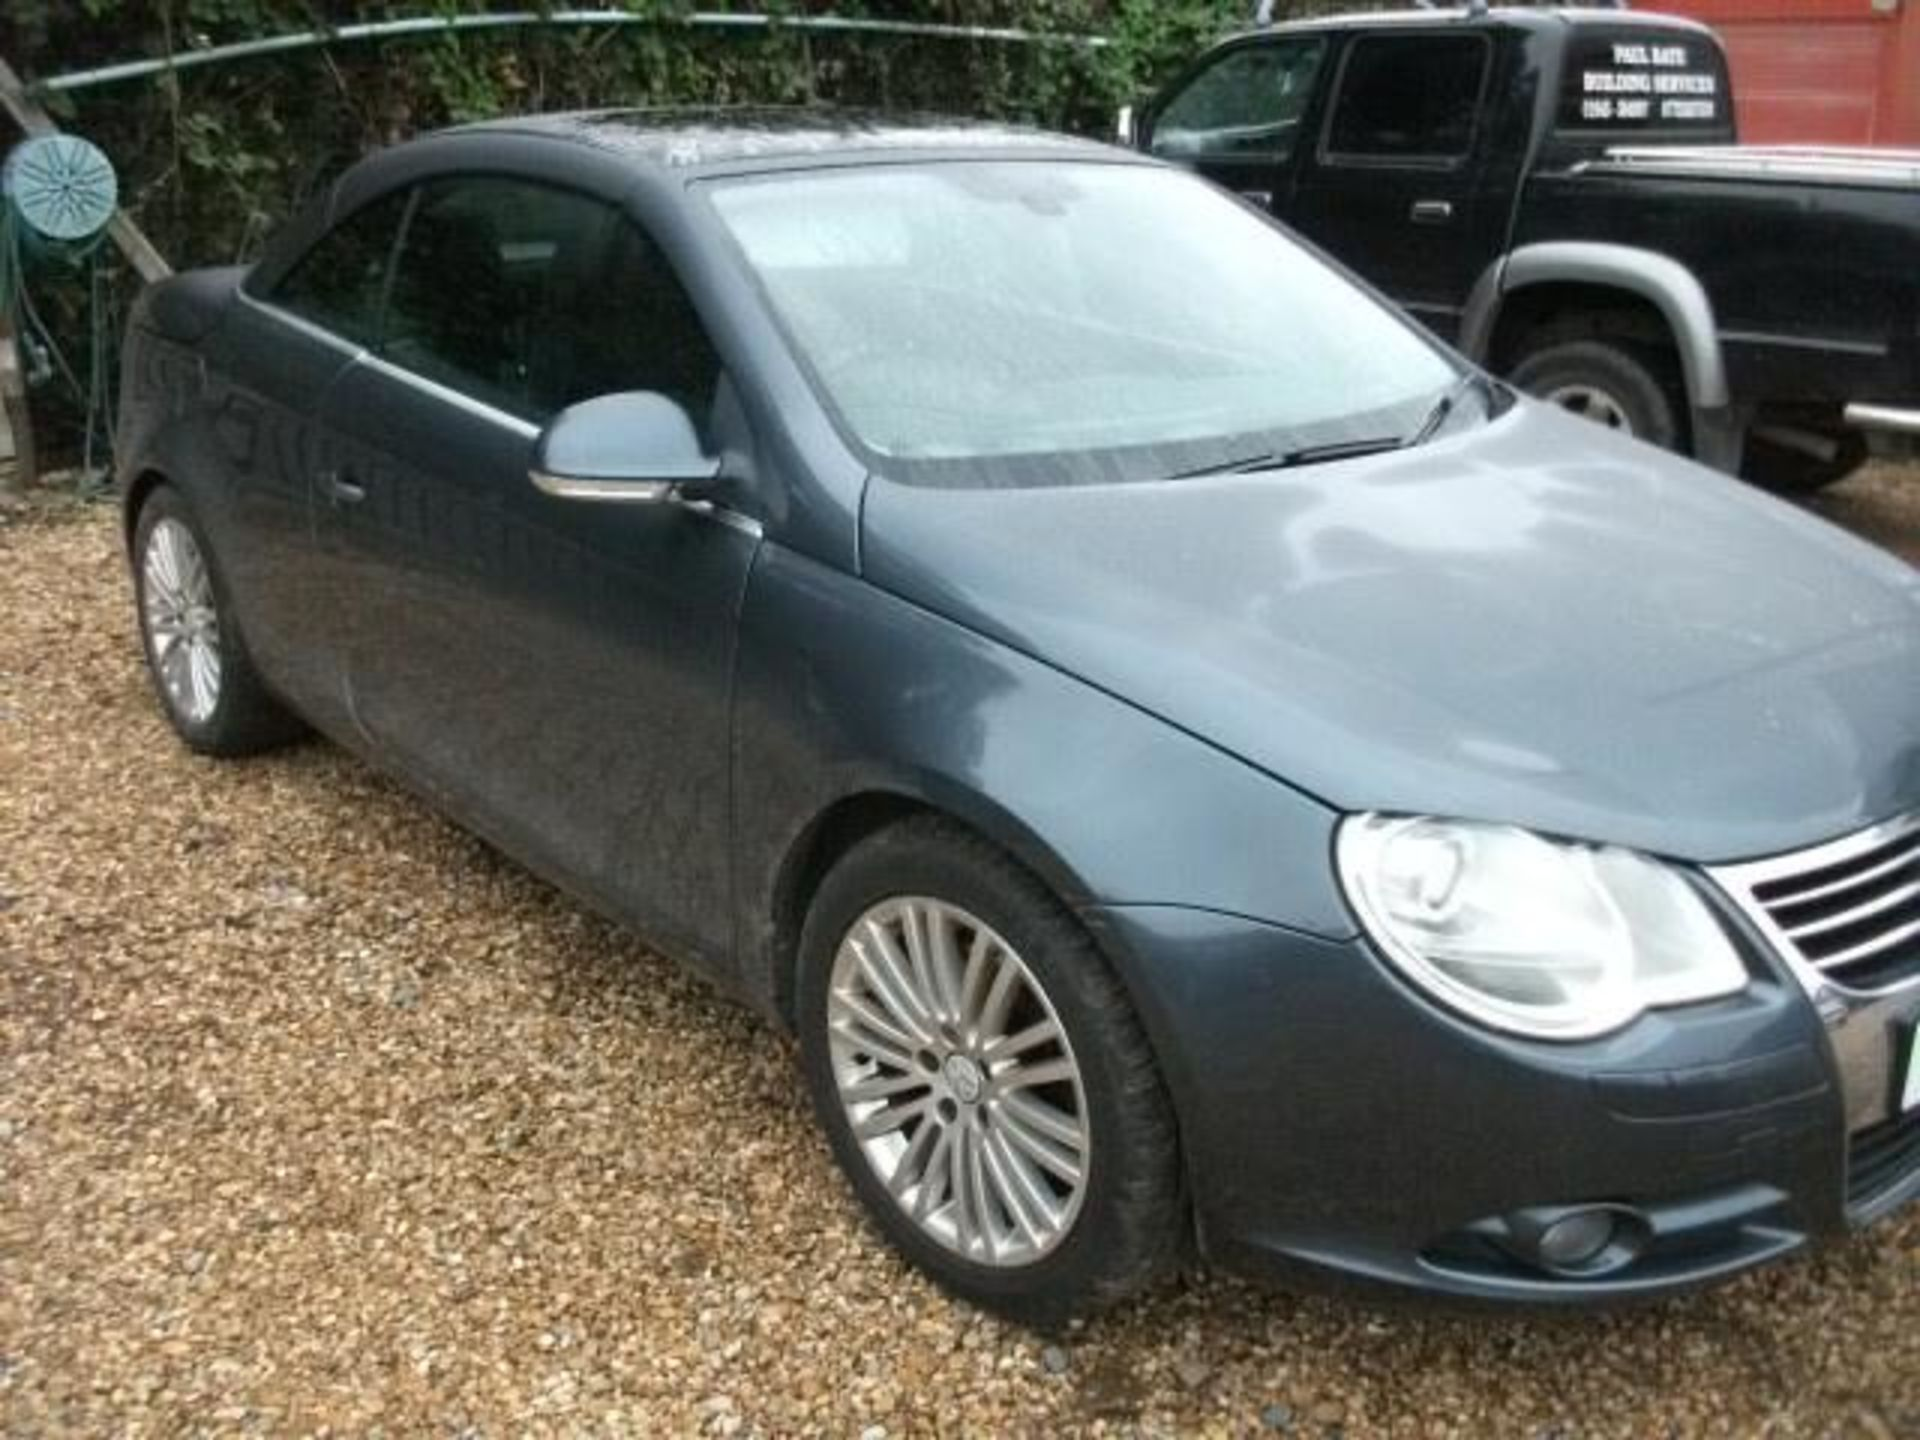 2007 VW EOS 2.0 TDI - Image 2 of 14